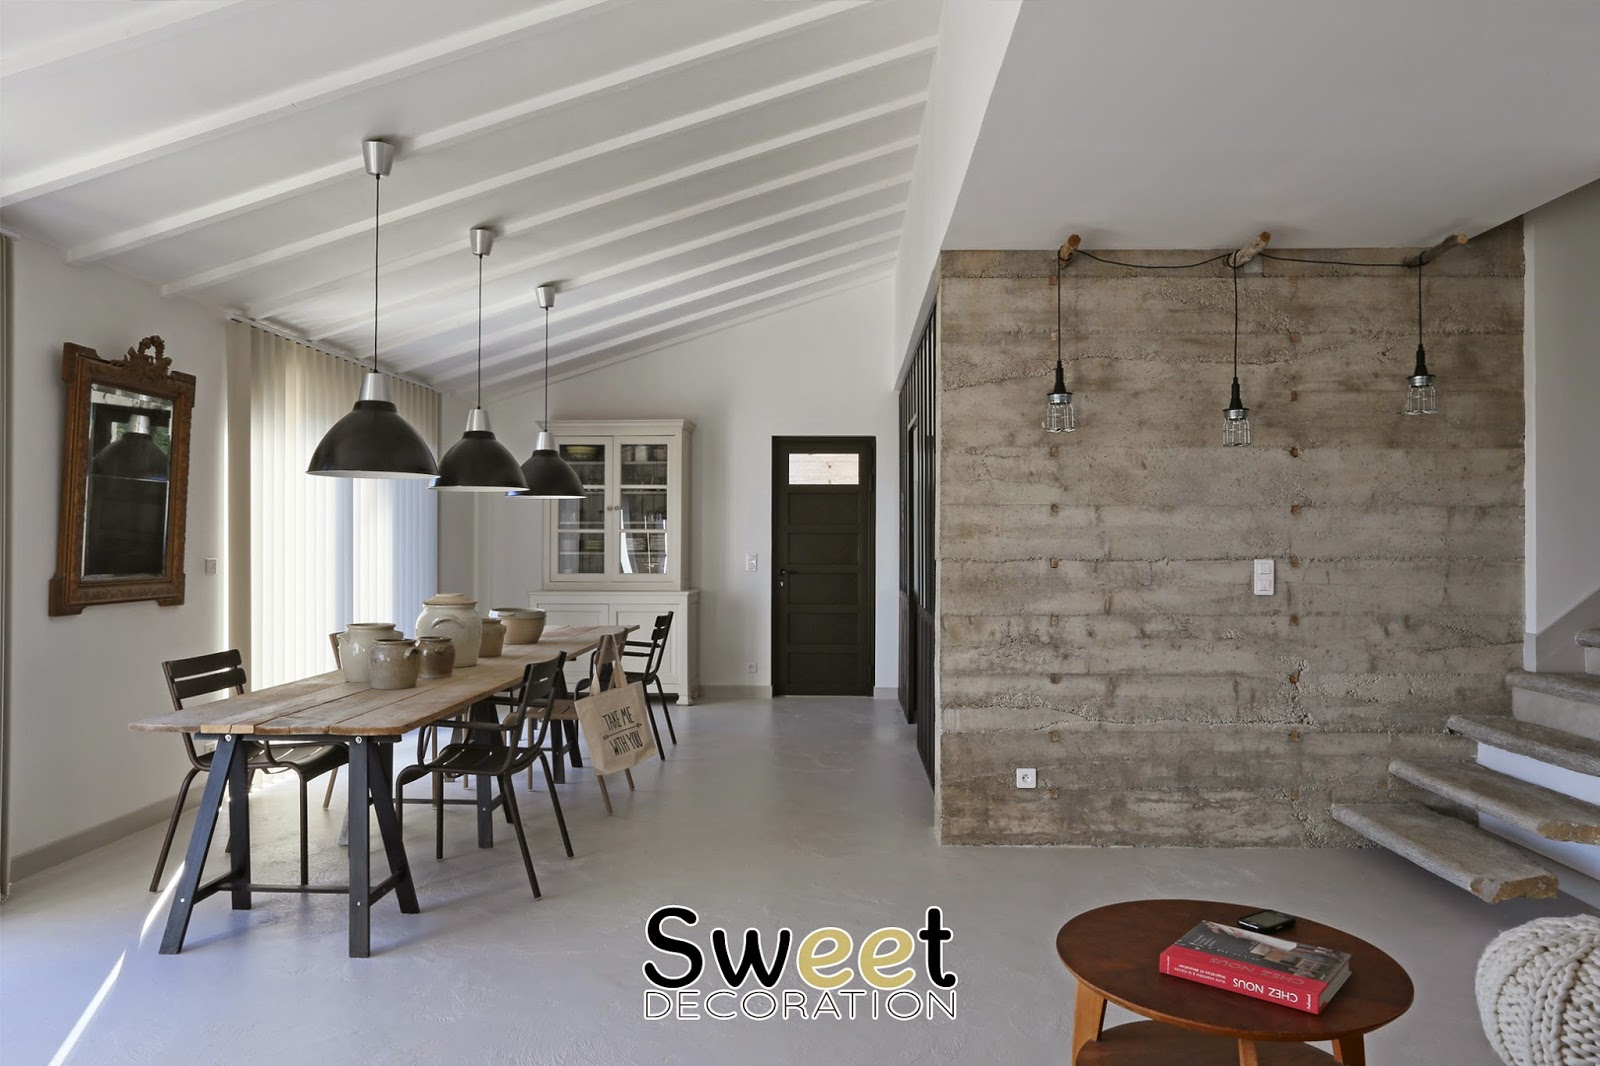 Am nagement int rieur d 39 une maison contemporaine sweet - Decoration interieur maison moderne ...